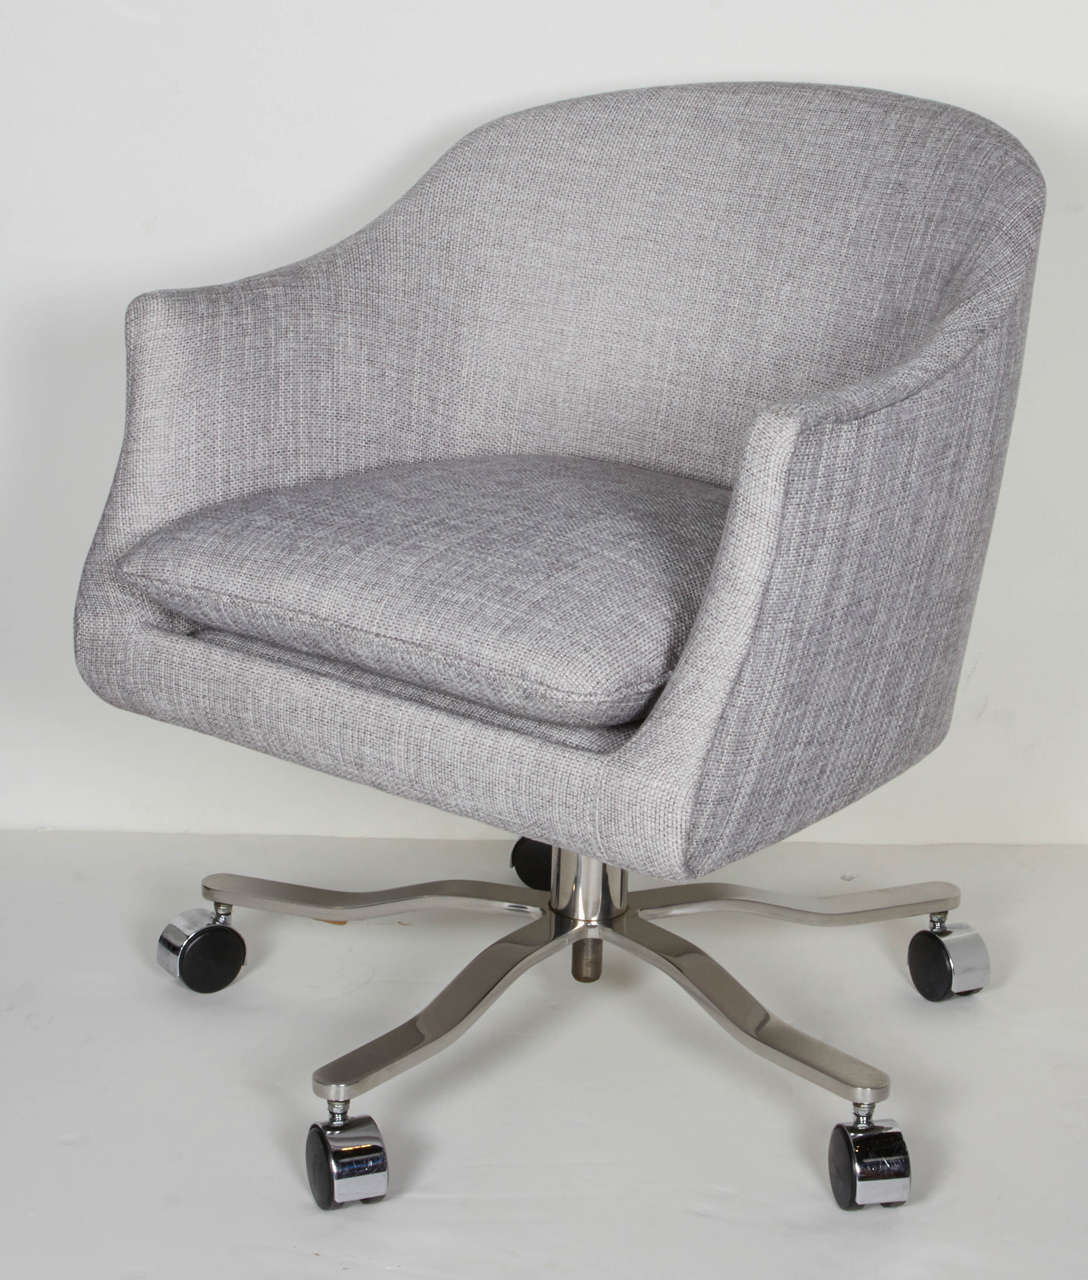 American Mid-Century Modern Swivel Desk Chair Designed by Ward Bennett For Sale